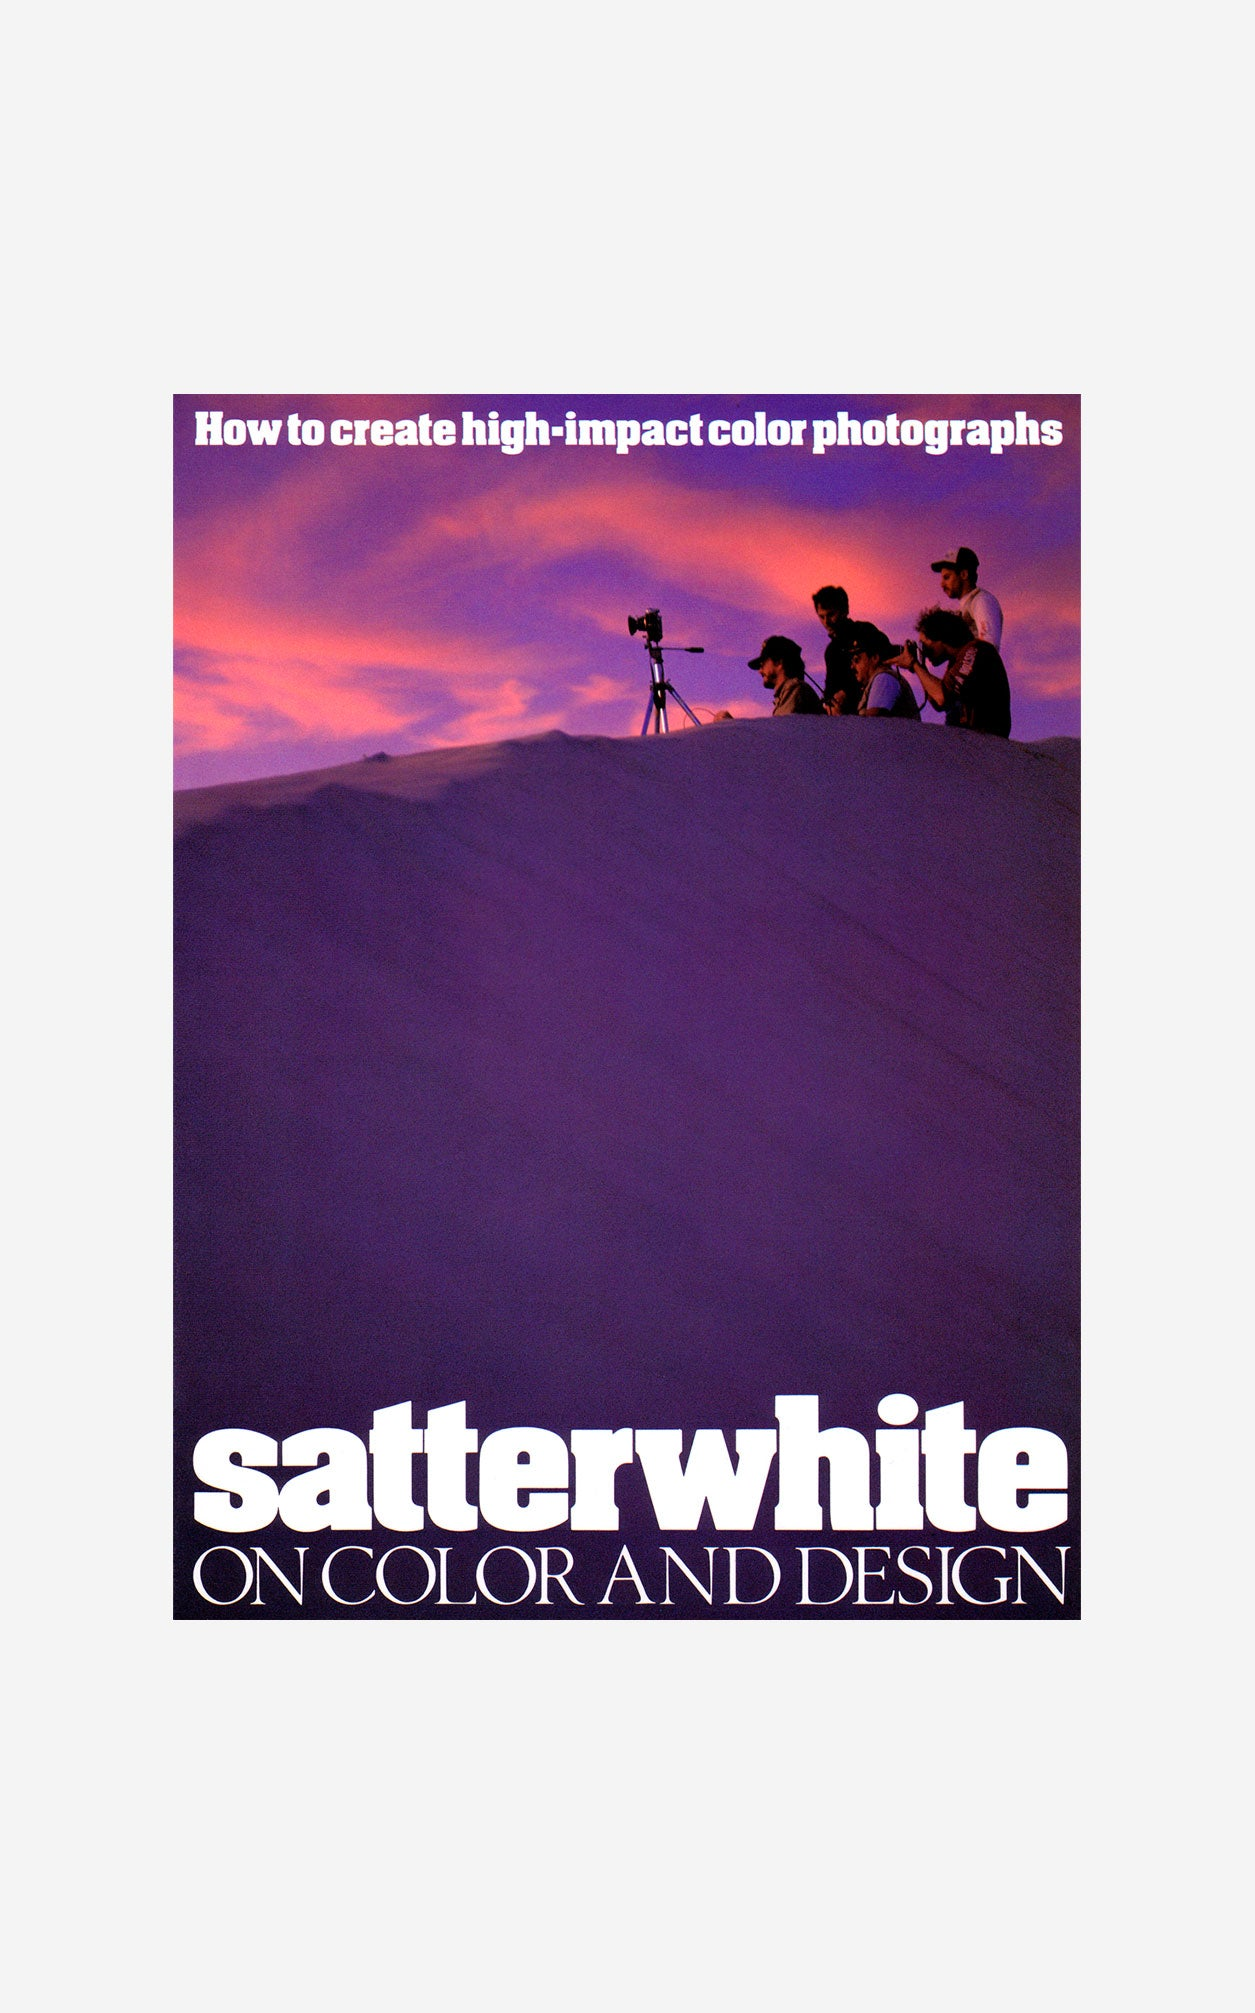 Satterwhite on colour and design